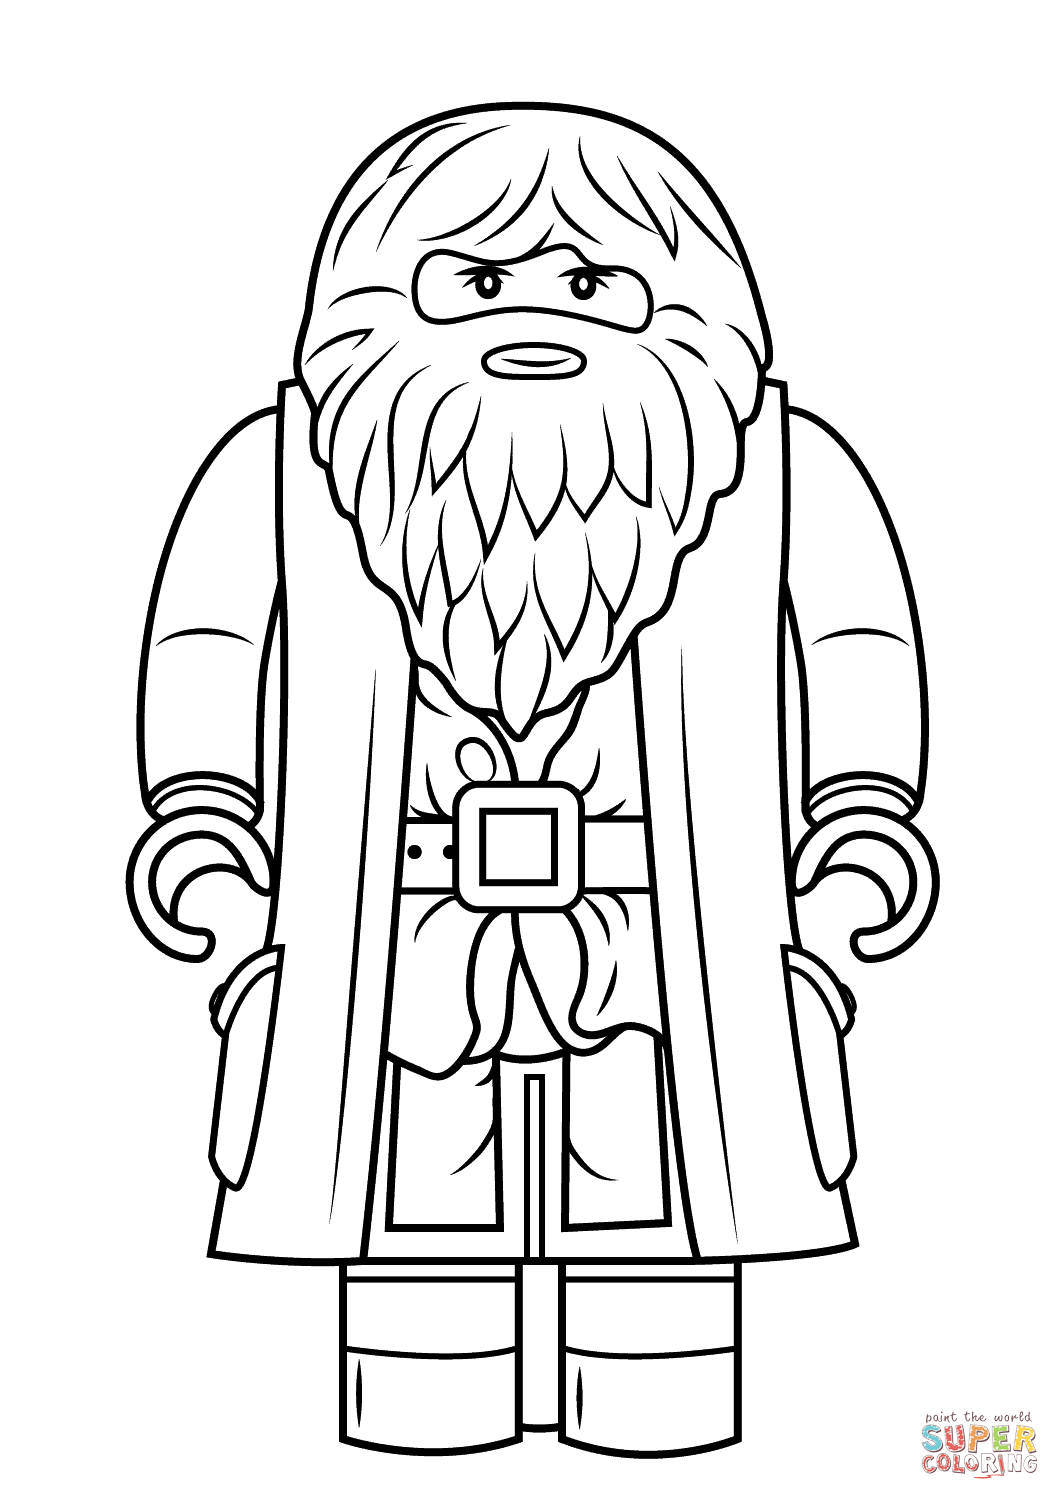 Lego Rubeus Hagrid Minifigure Super Coloring Activities Keeping